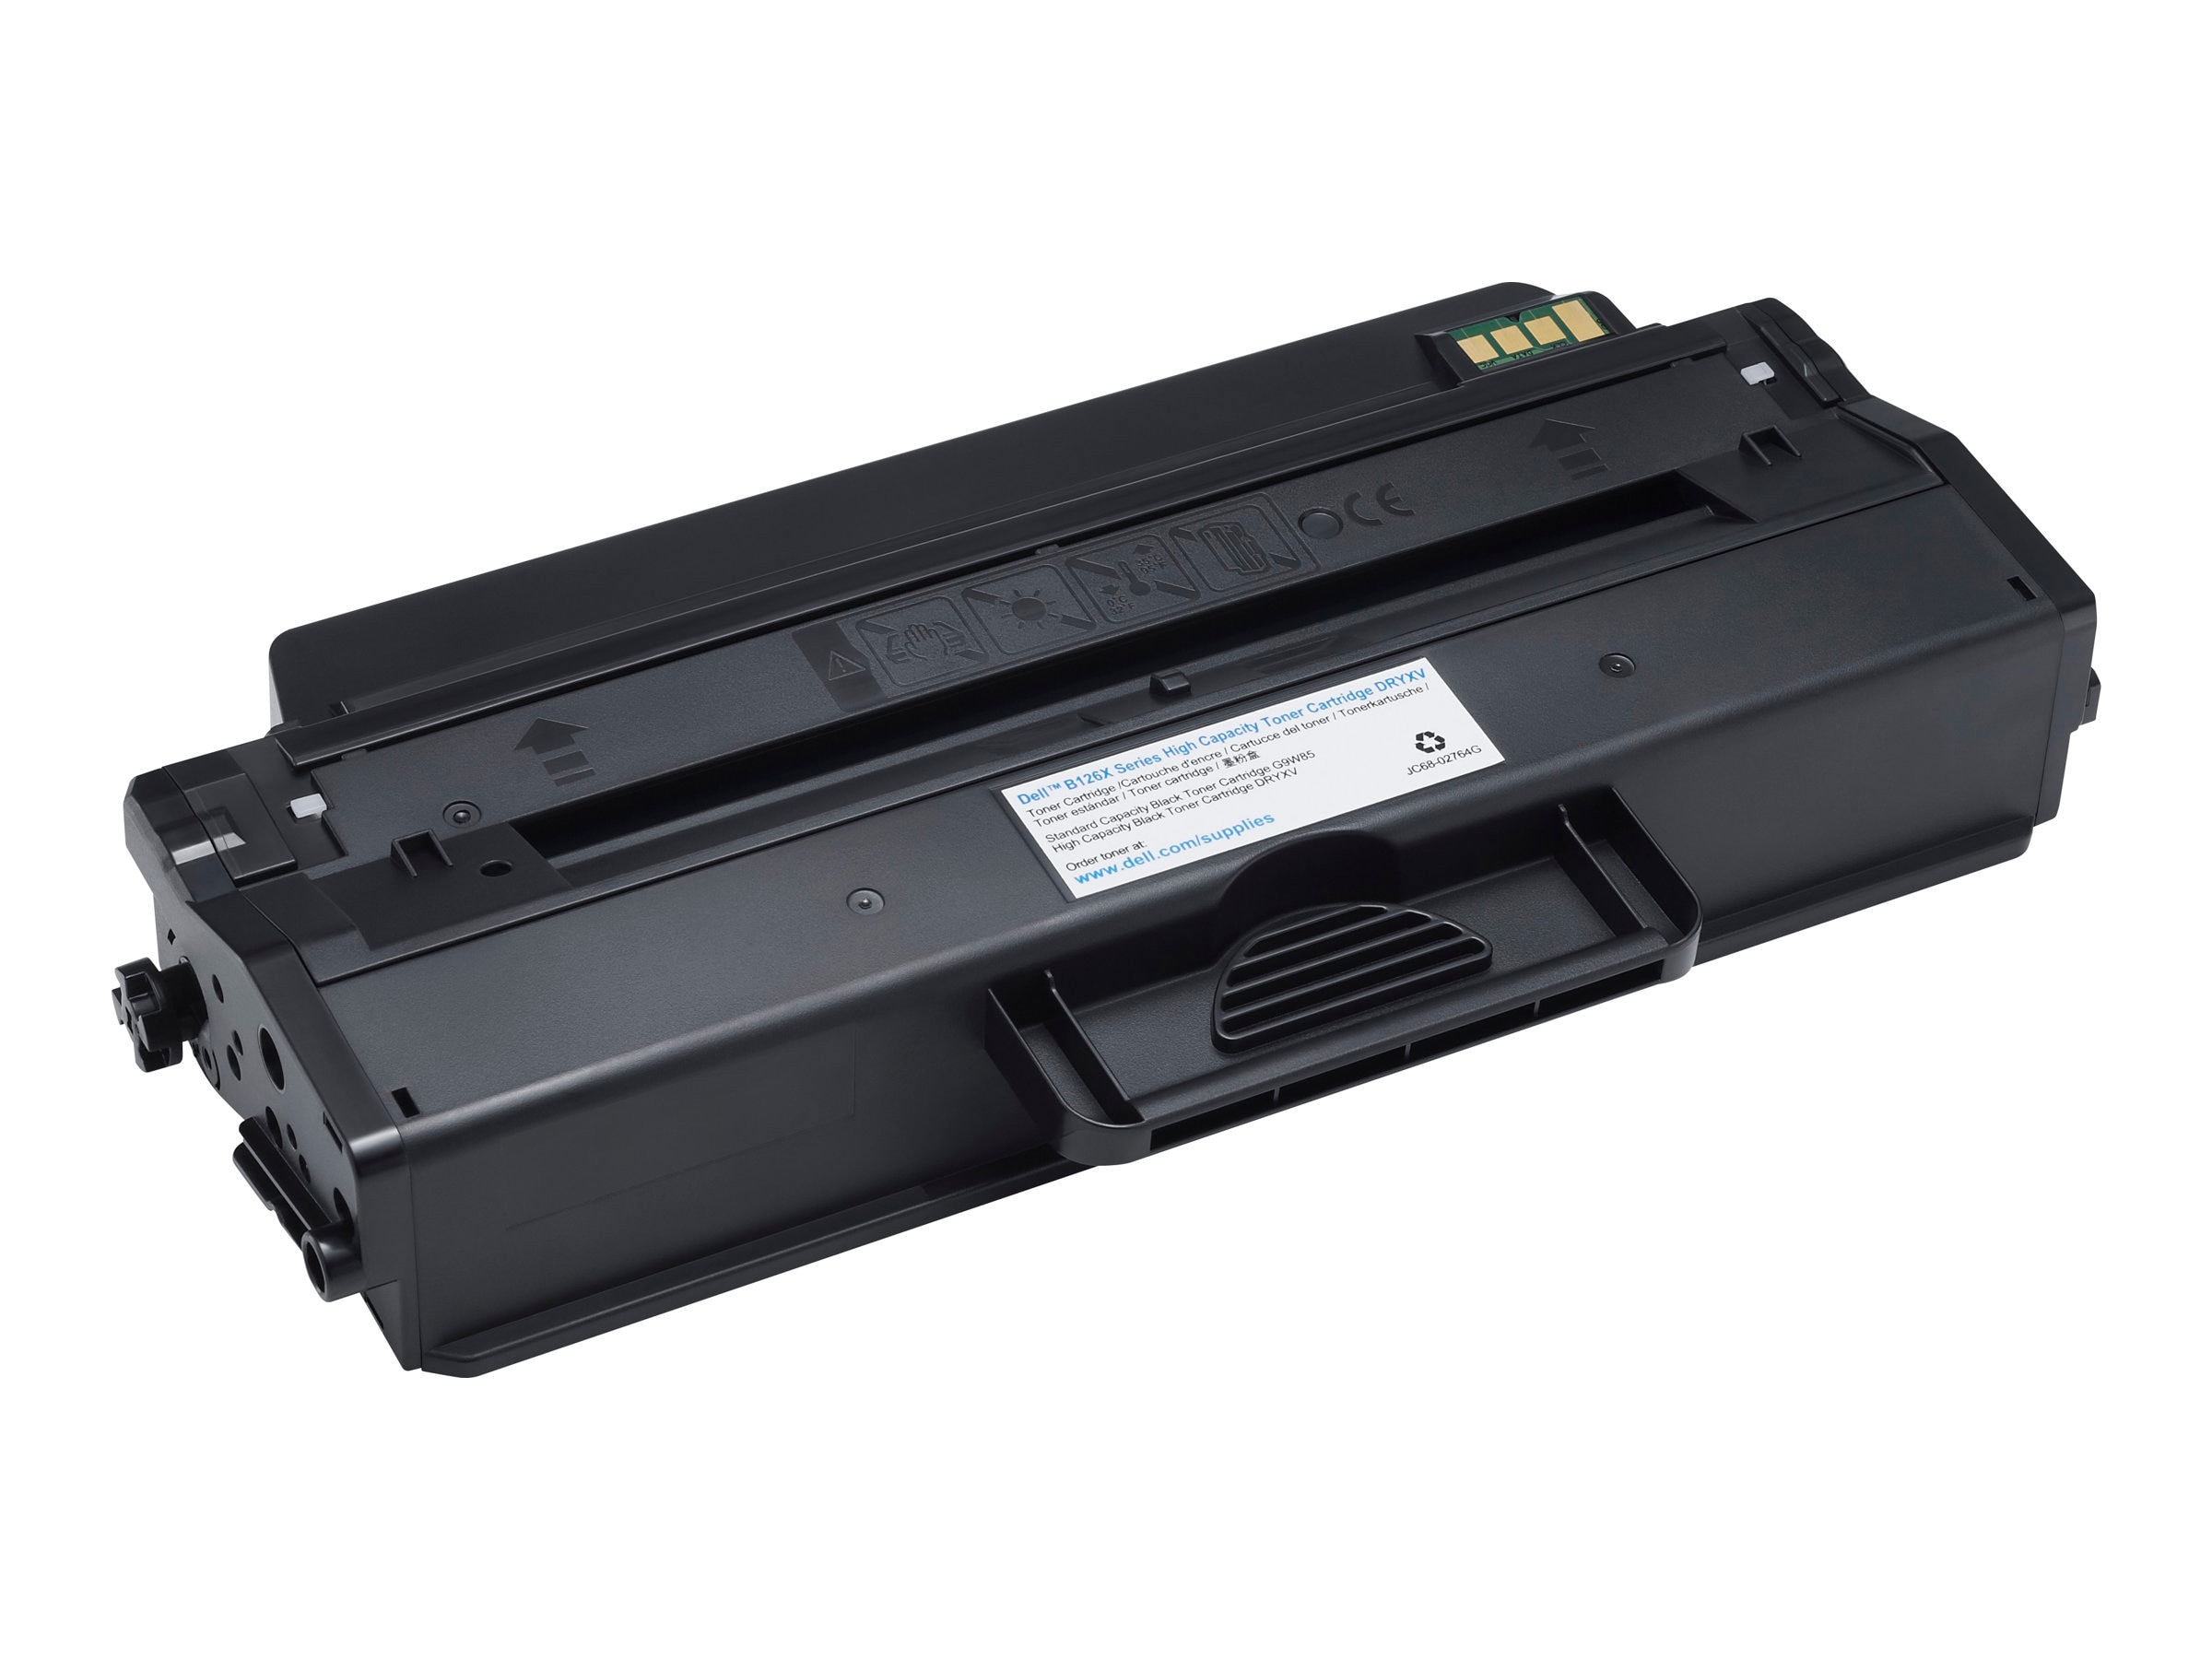 Dell Black Toner Cartridge for B1260dn  B1265dnf  B1265dfw Printers, DRYXV